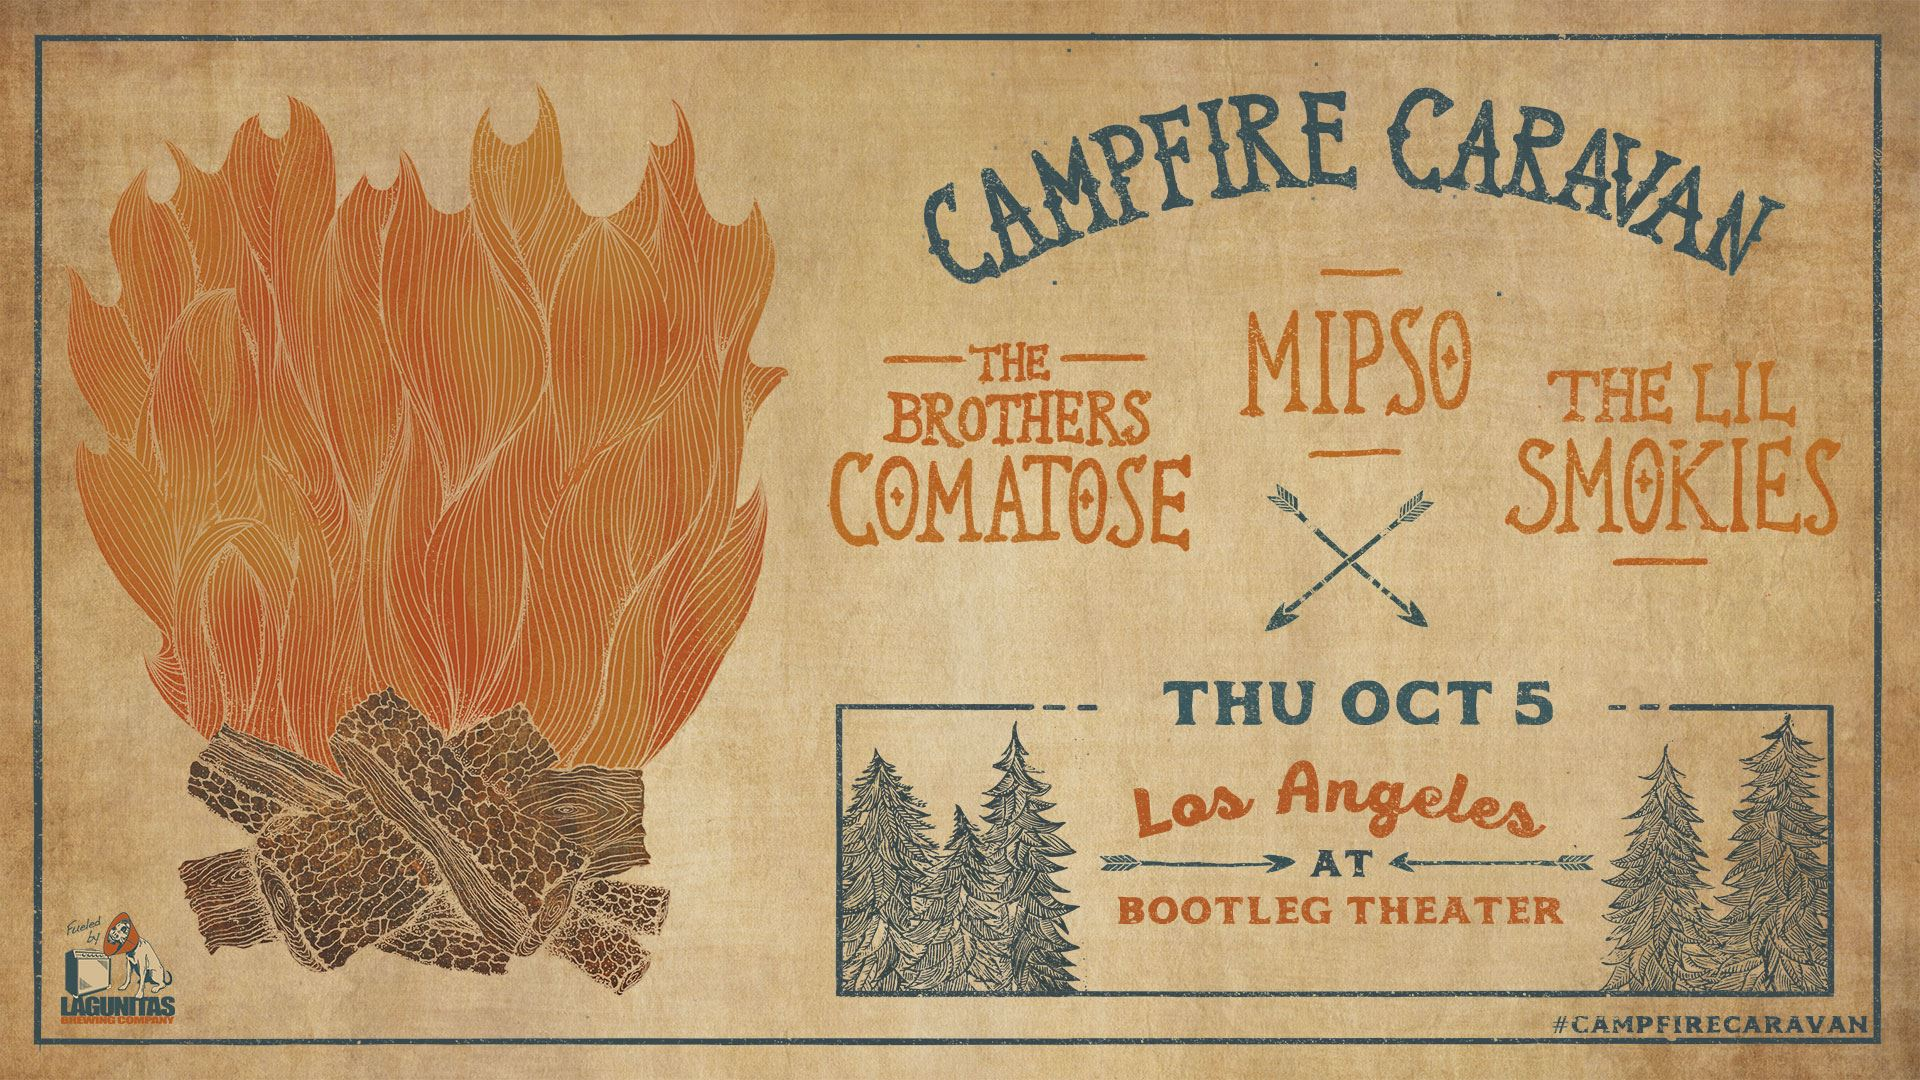 GIVEAWAY - Win tickets to Campfire Caravan at Bootleg Theater (LA) 10/5